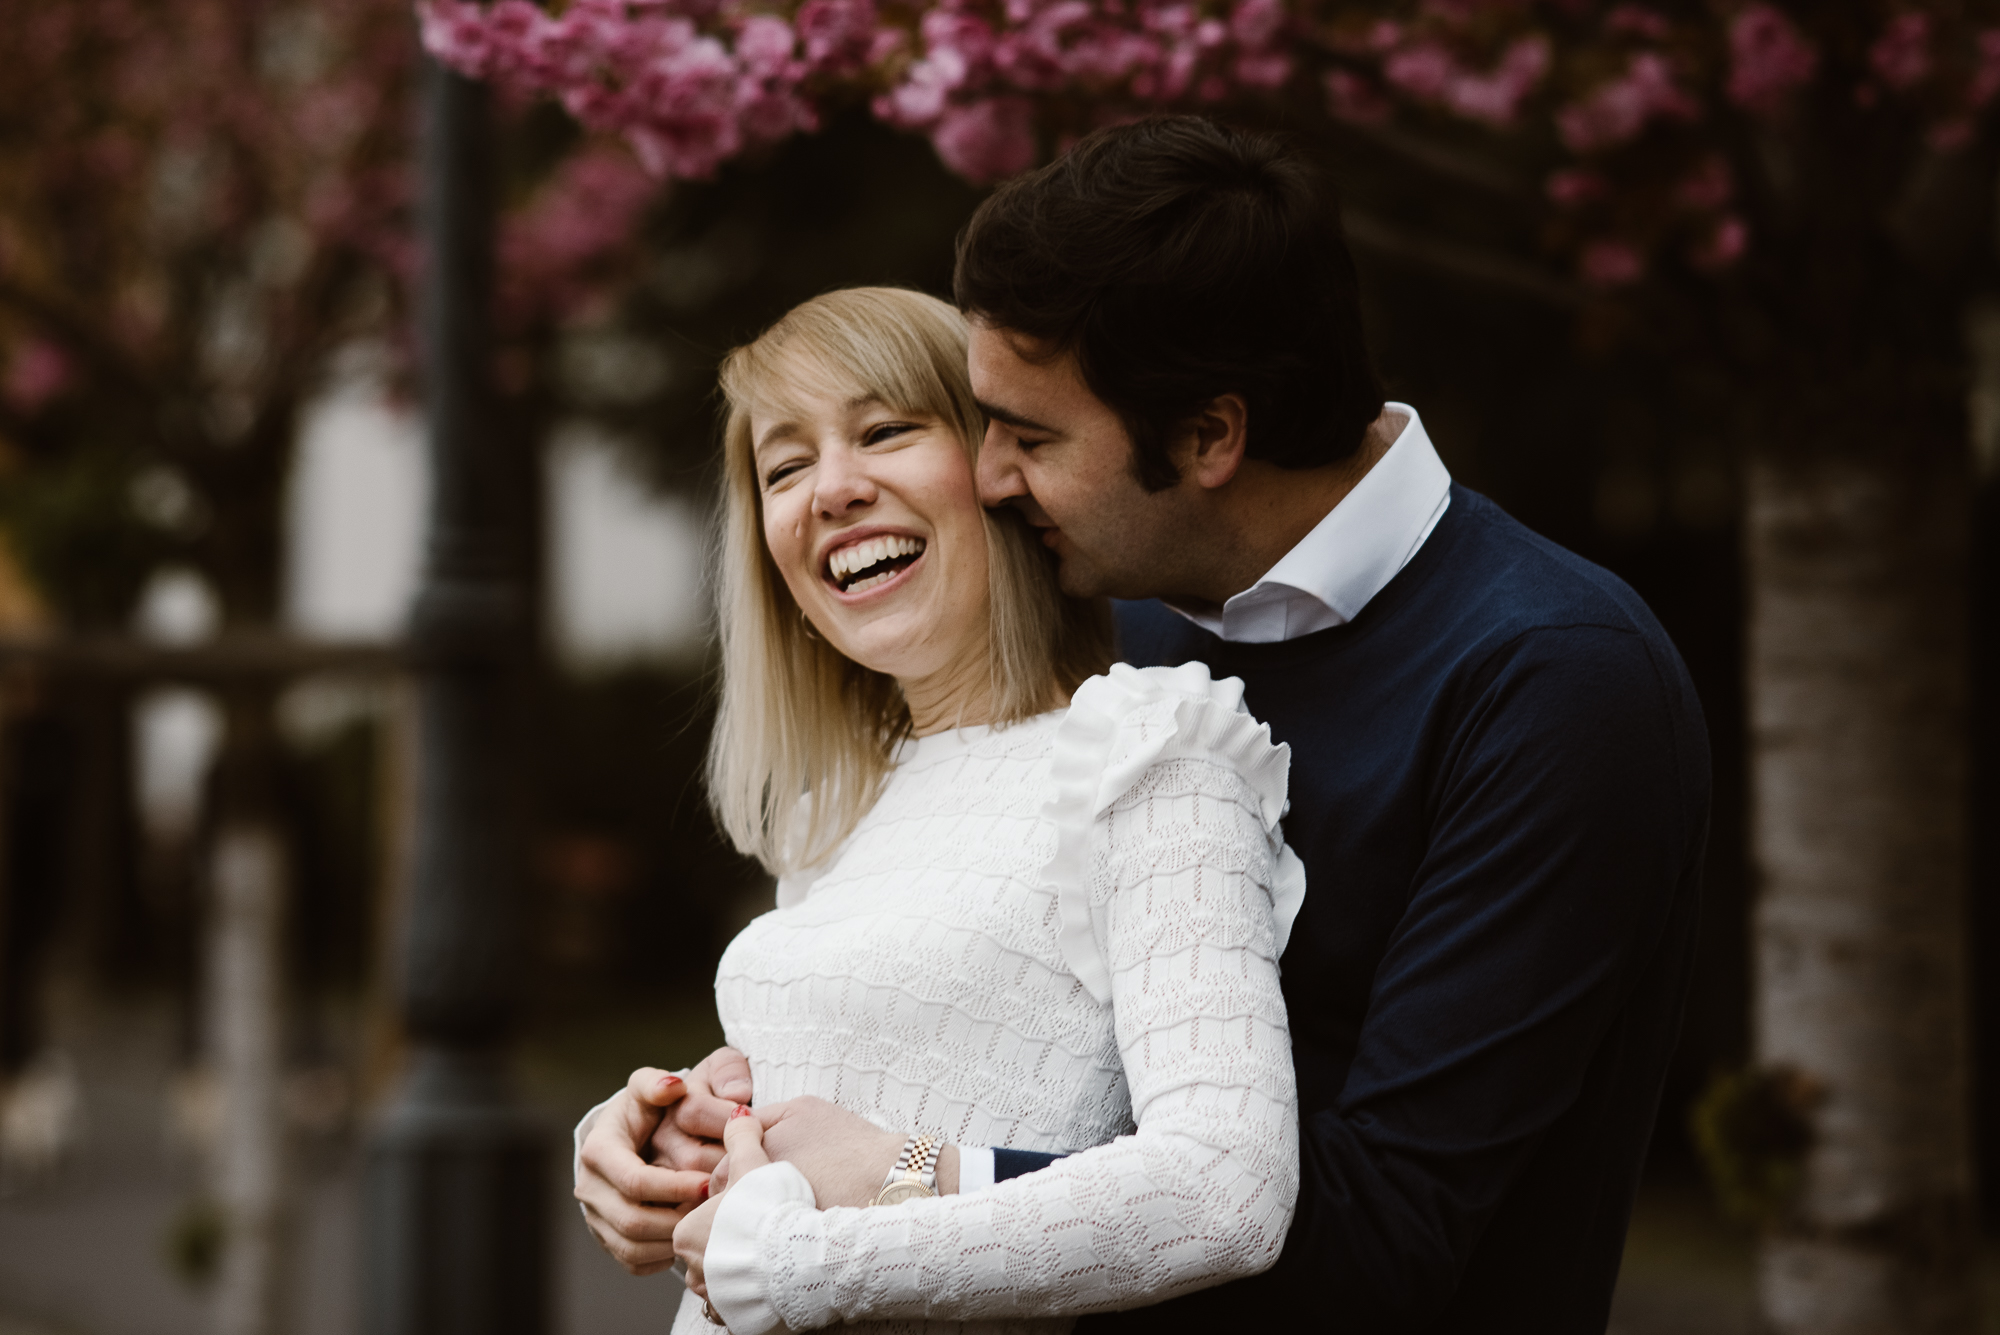 engagement photoshoot in Paris by The Wedding Fox destination wedding photographer